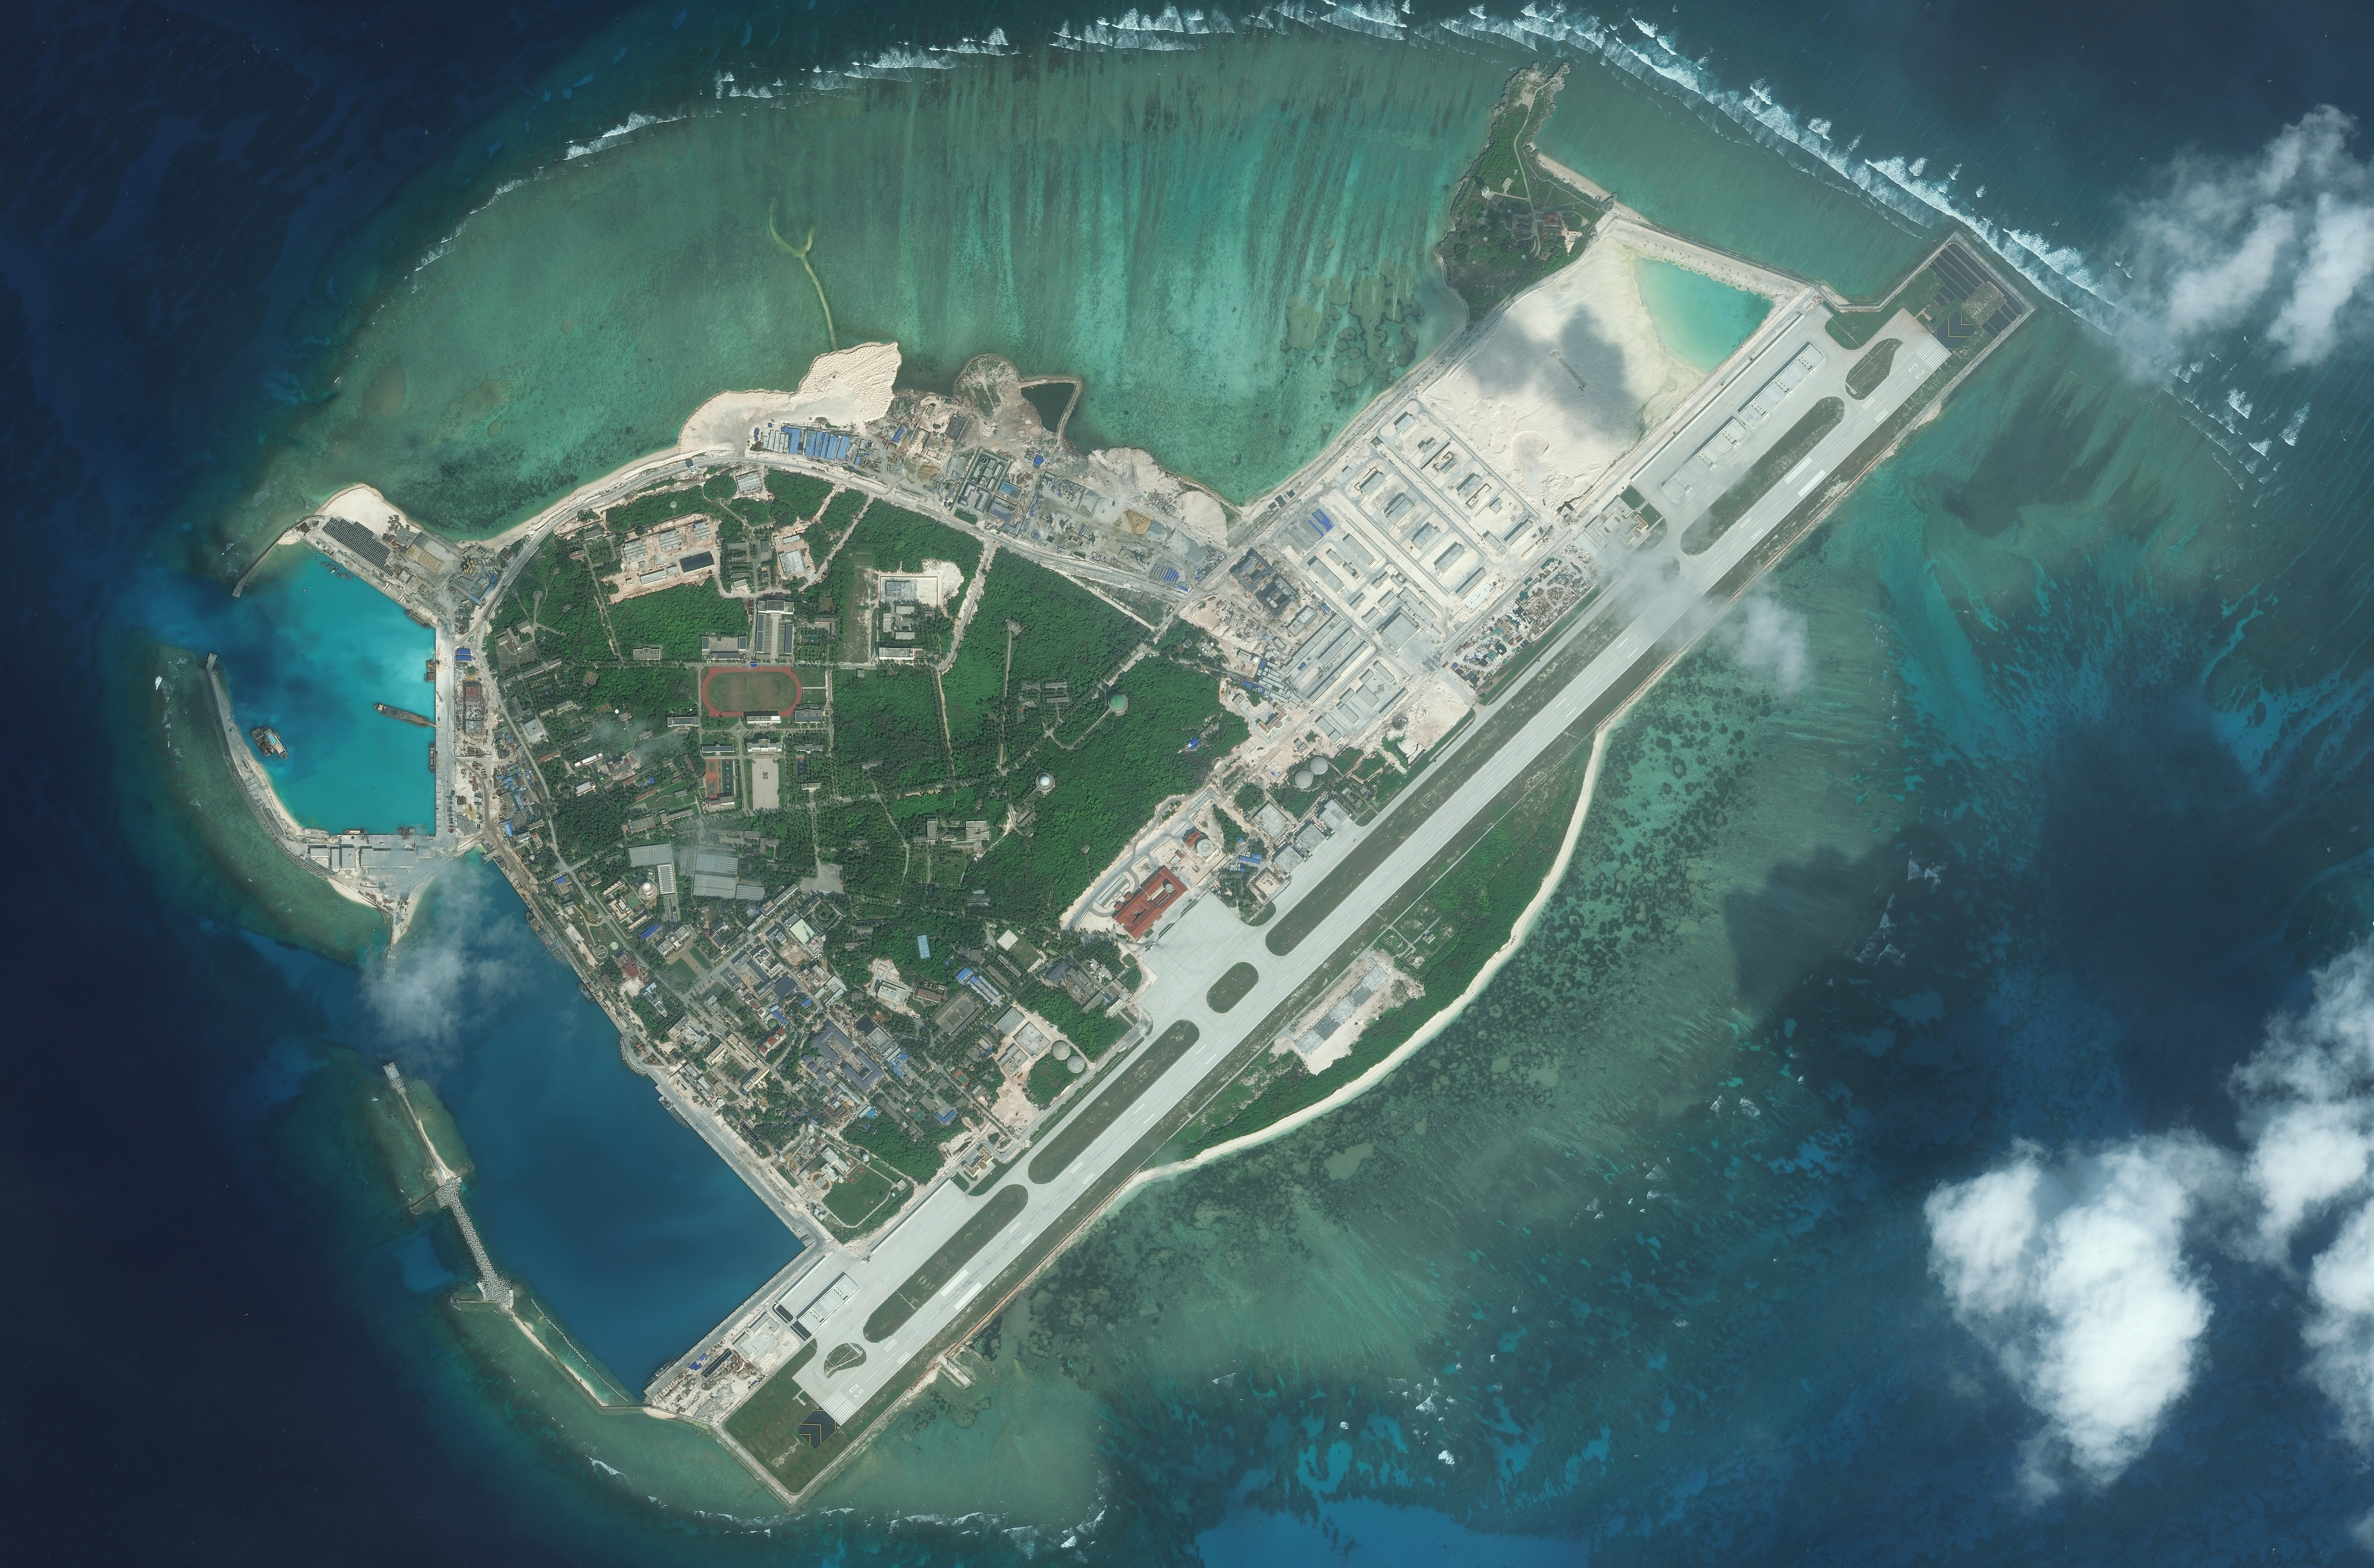 DigitalGlobe medium-view imagery from Jan. 9, 2016, of Woody Island.  Woody Island, also known as Yongxing Island and Phu Lam Island, is the largest isle of the Paracel Islands in the South China Sea